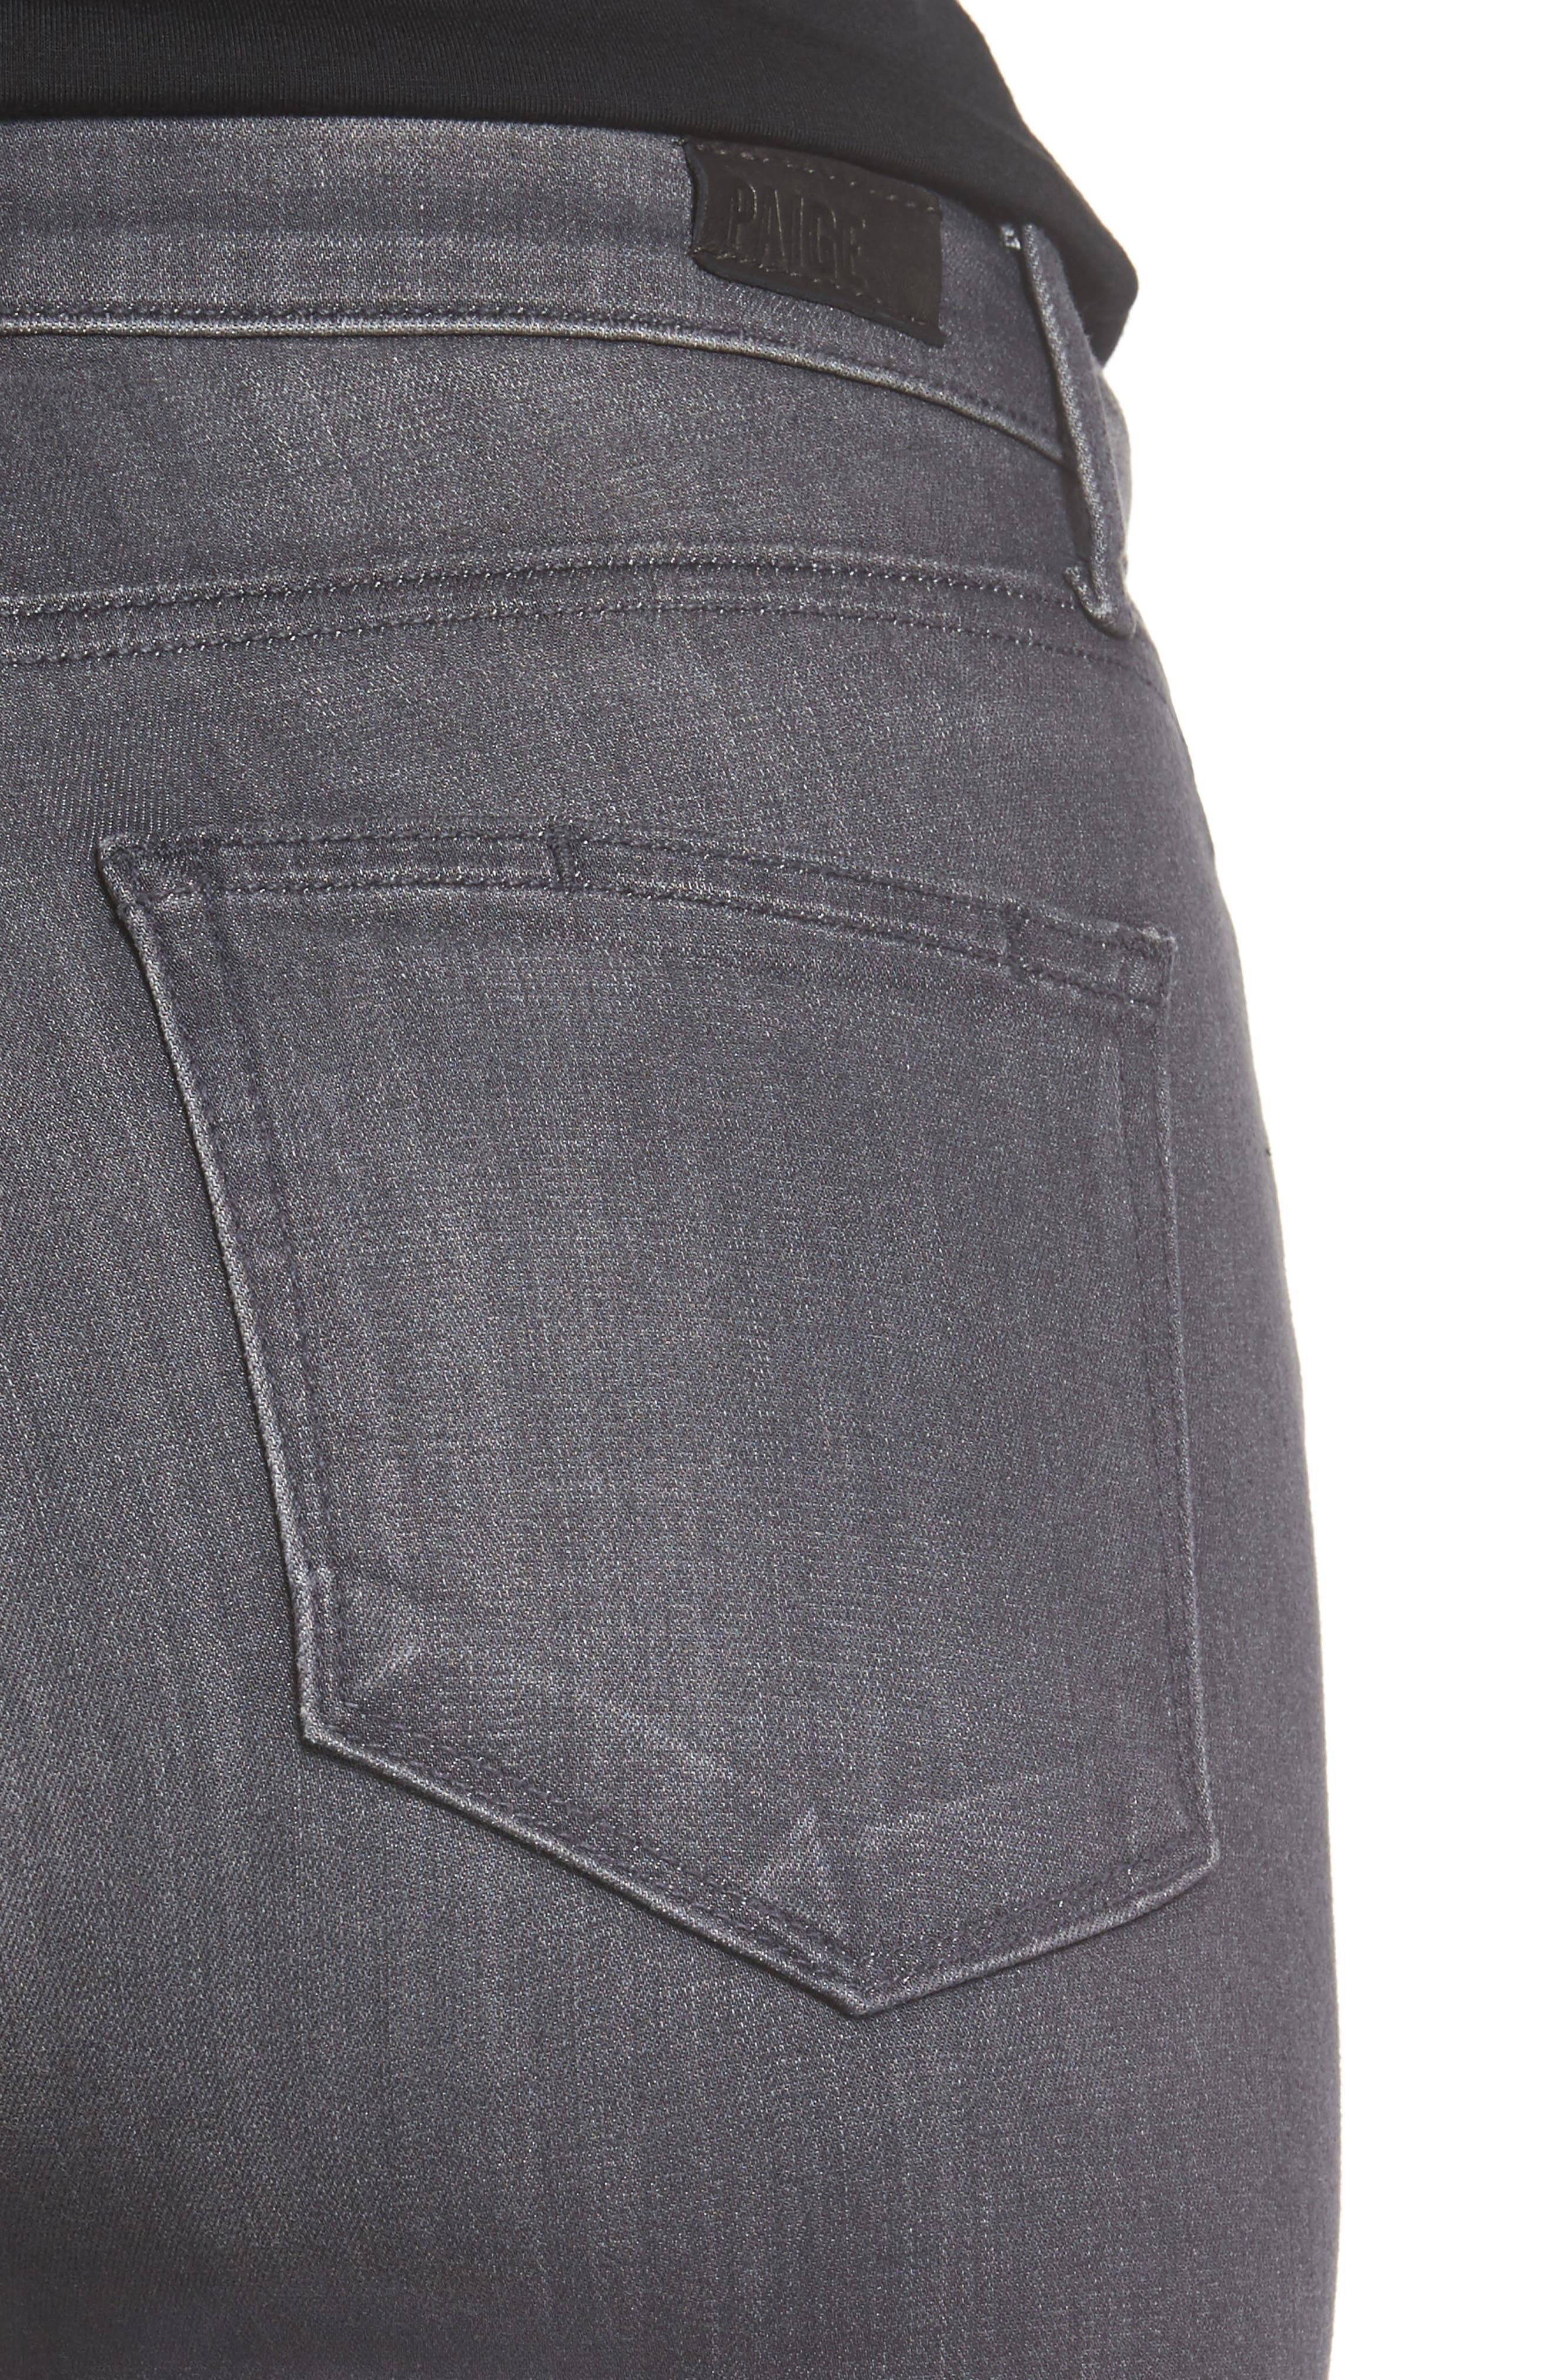 Alternate Image 4  - PAIGE Transcend - Hoxton High Waist Ultra Skinny Jeans (Summit Grey)